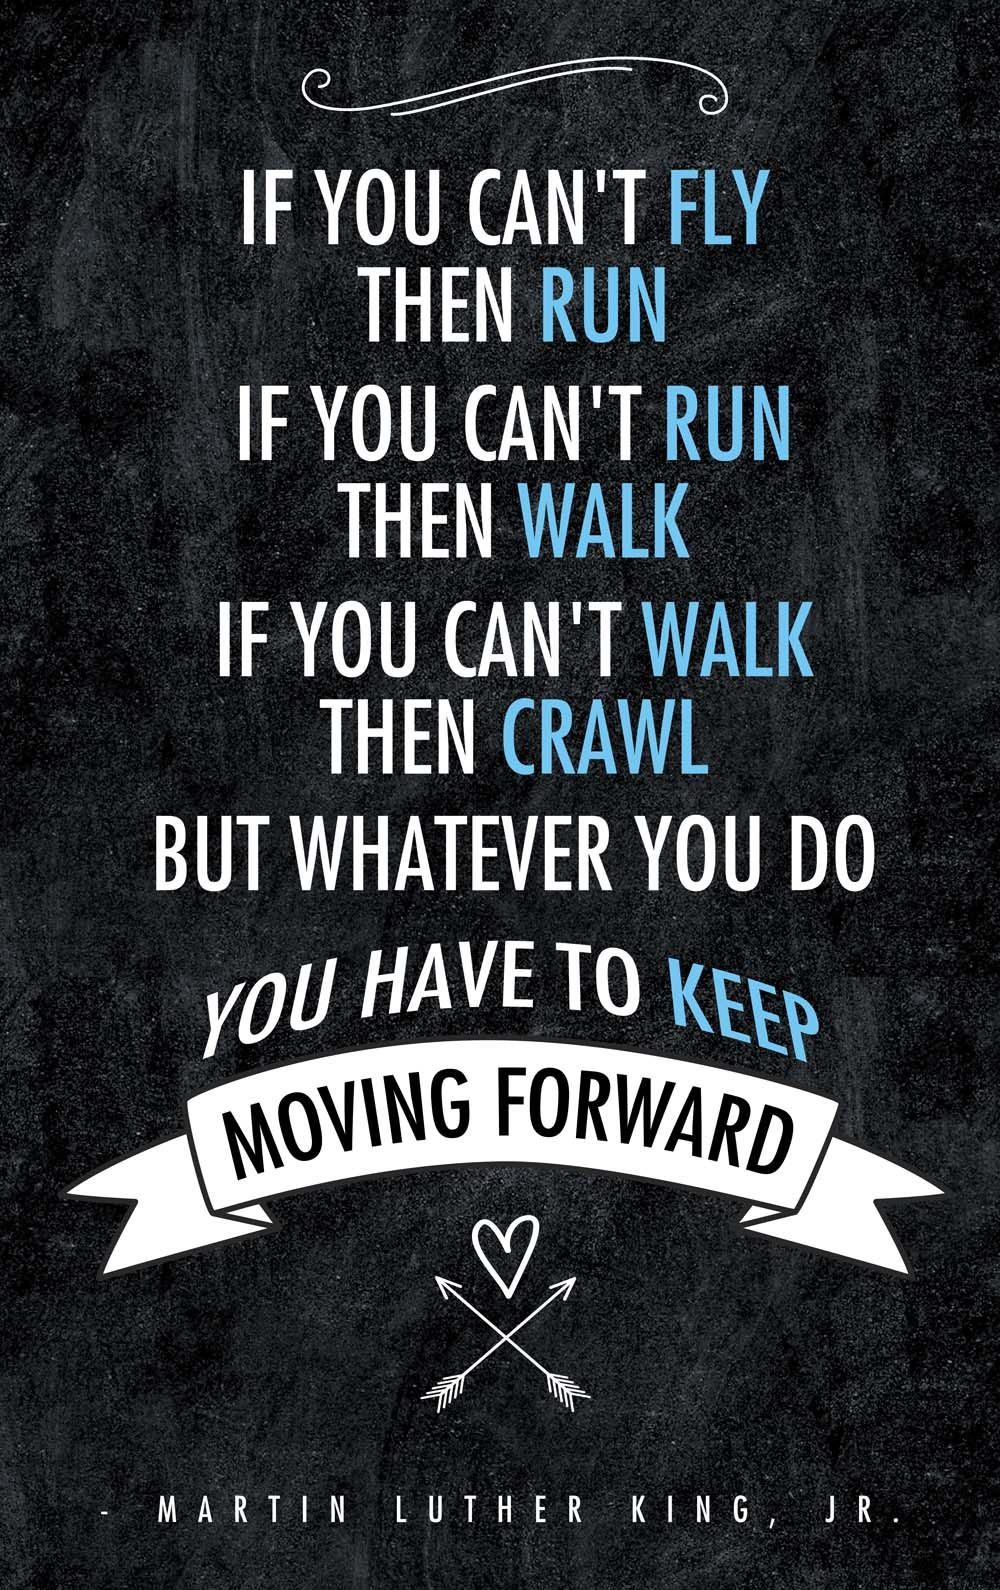 Move Forward Quotes Fair Keep Moving Forward #quote #martinlutherking  Inspiration Quotes